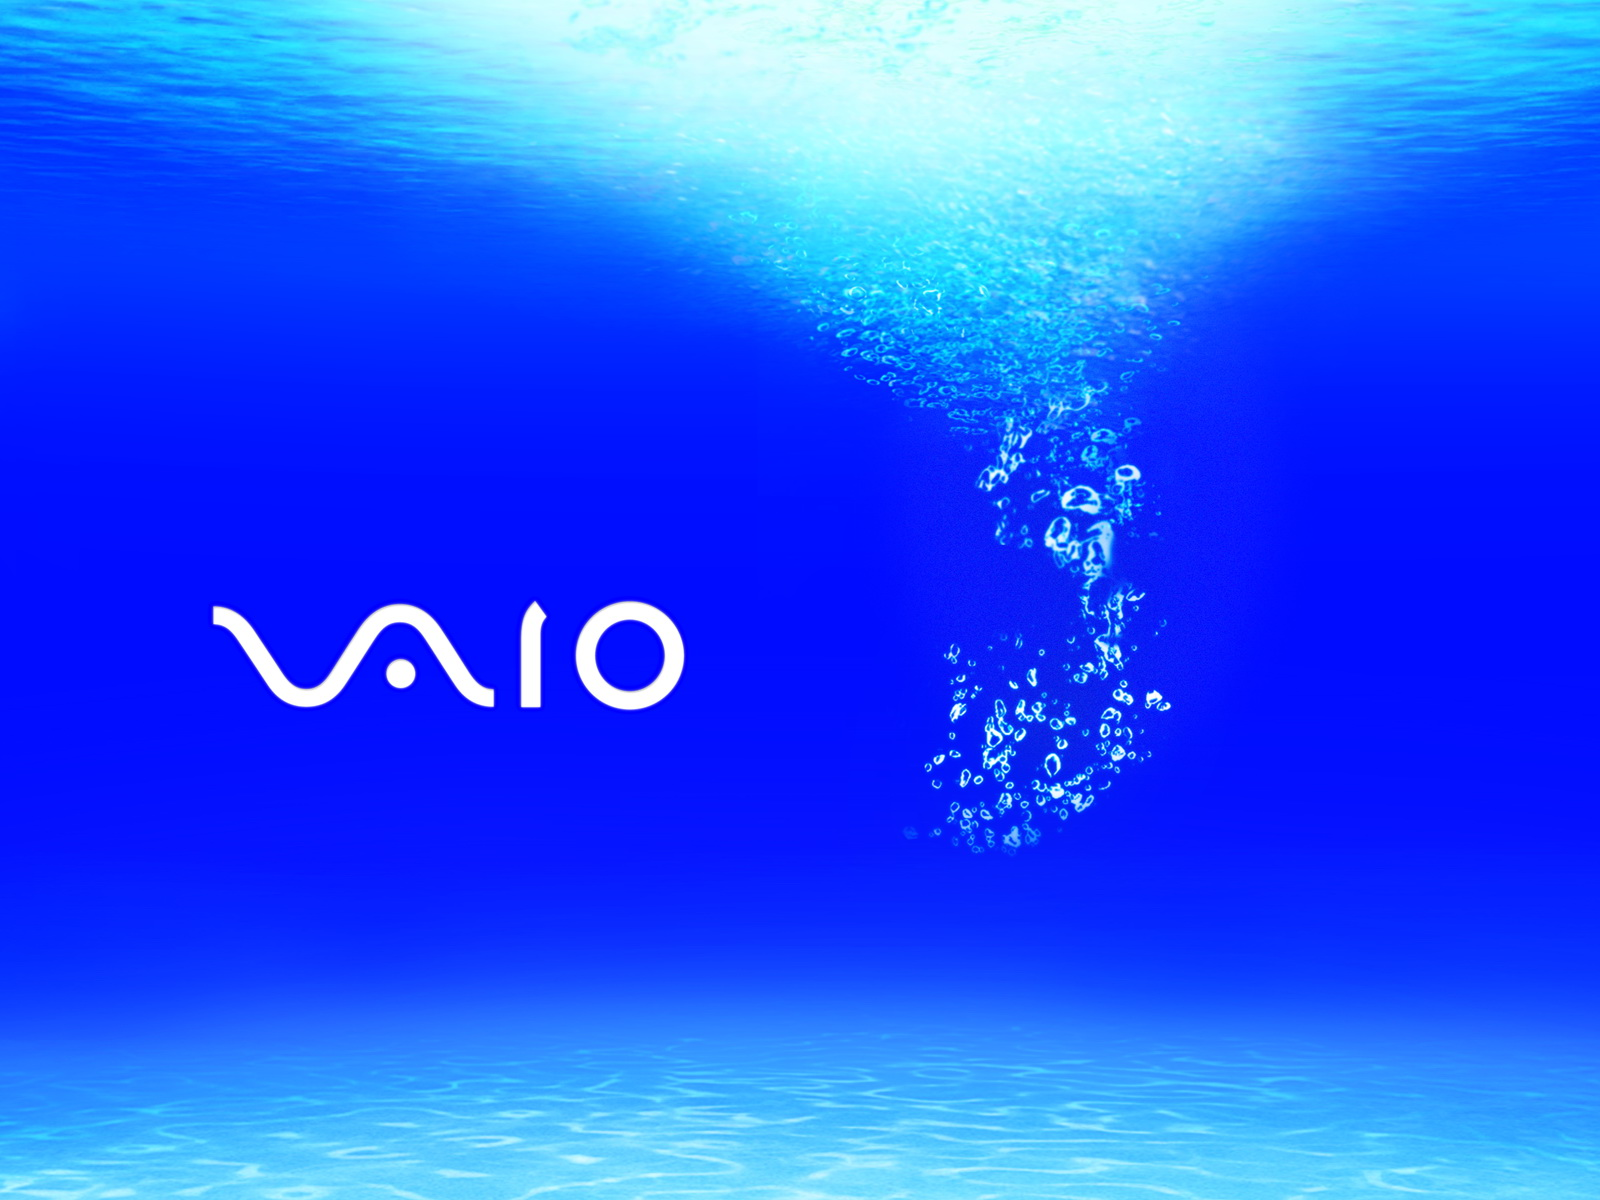 Vaio Wall Paper Black: New Background Wallpaper: Vaio Wallpaper